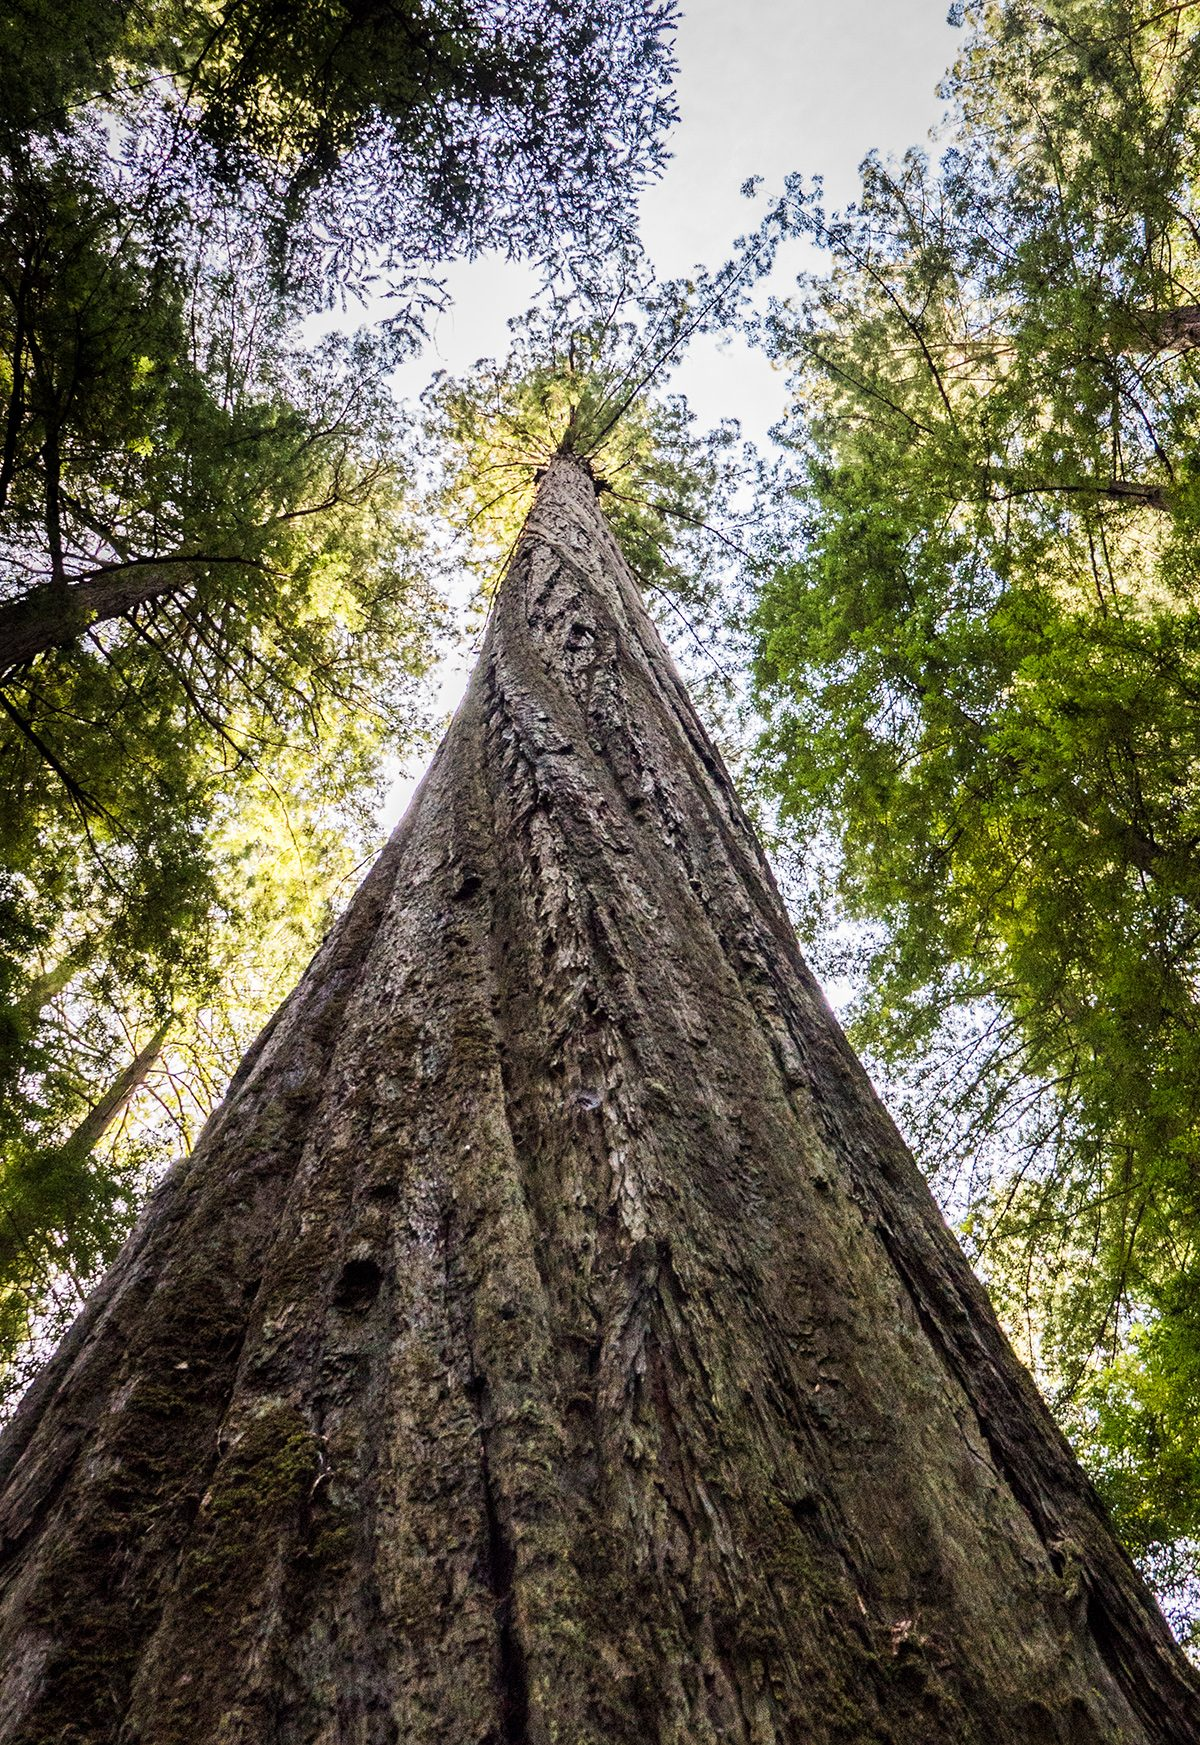 Looking for the World's Tallest Tree: Humboldt County, California